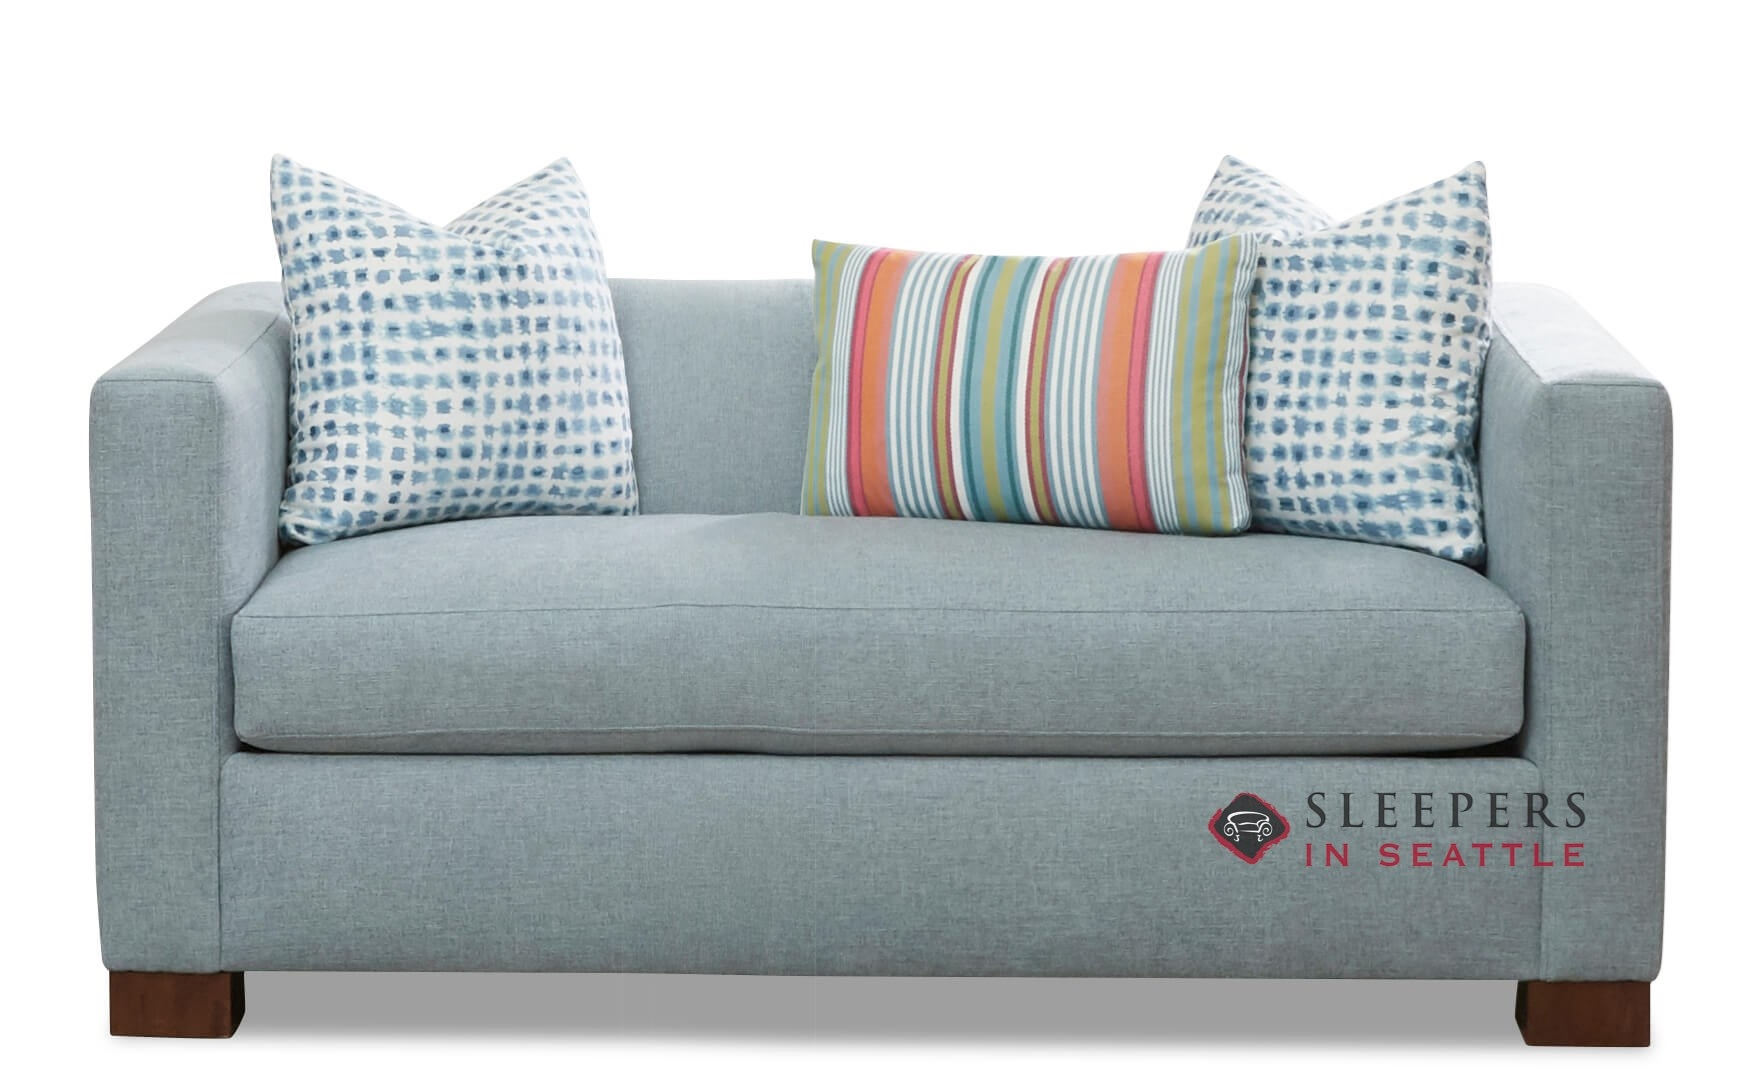 Customize And Personalize Rochester Twin Fabric Sofa By Savvy Twin Size Sofa Bed Sleepersinseattle Com